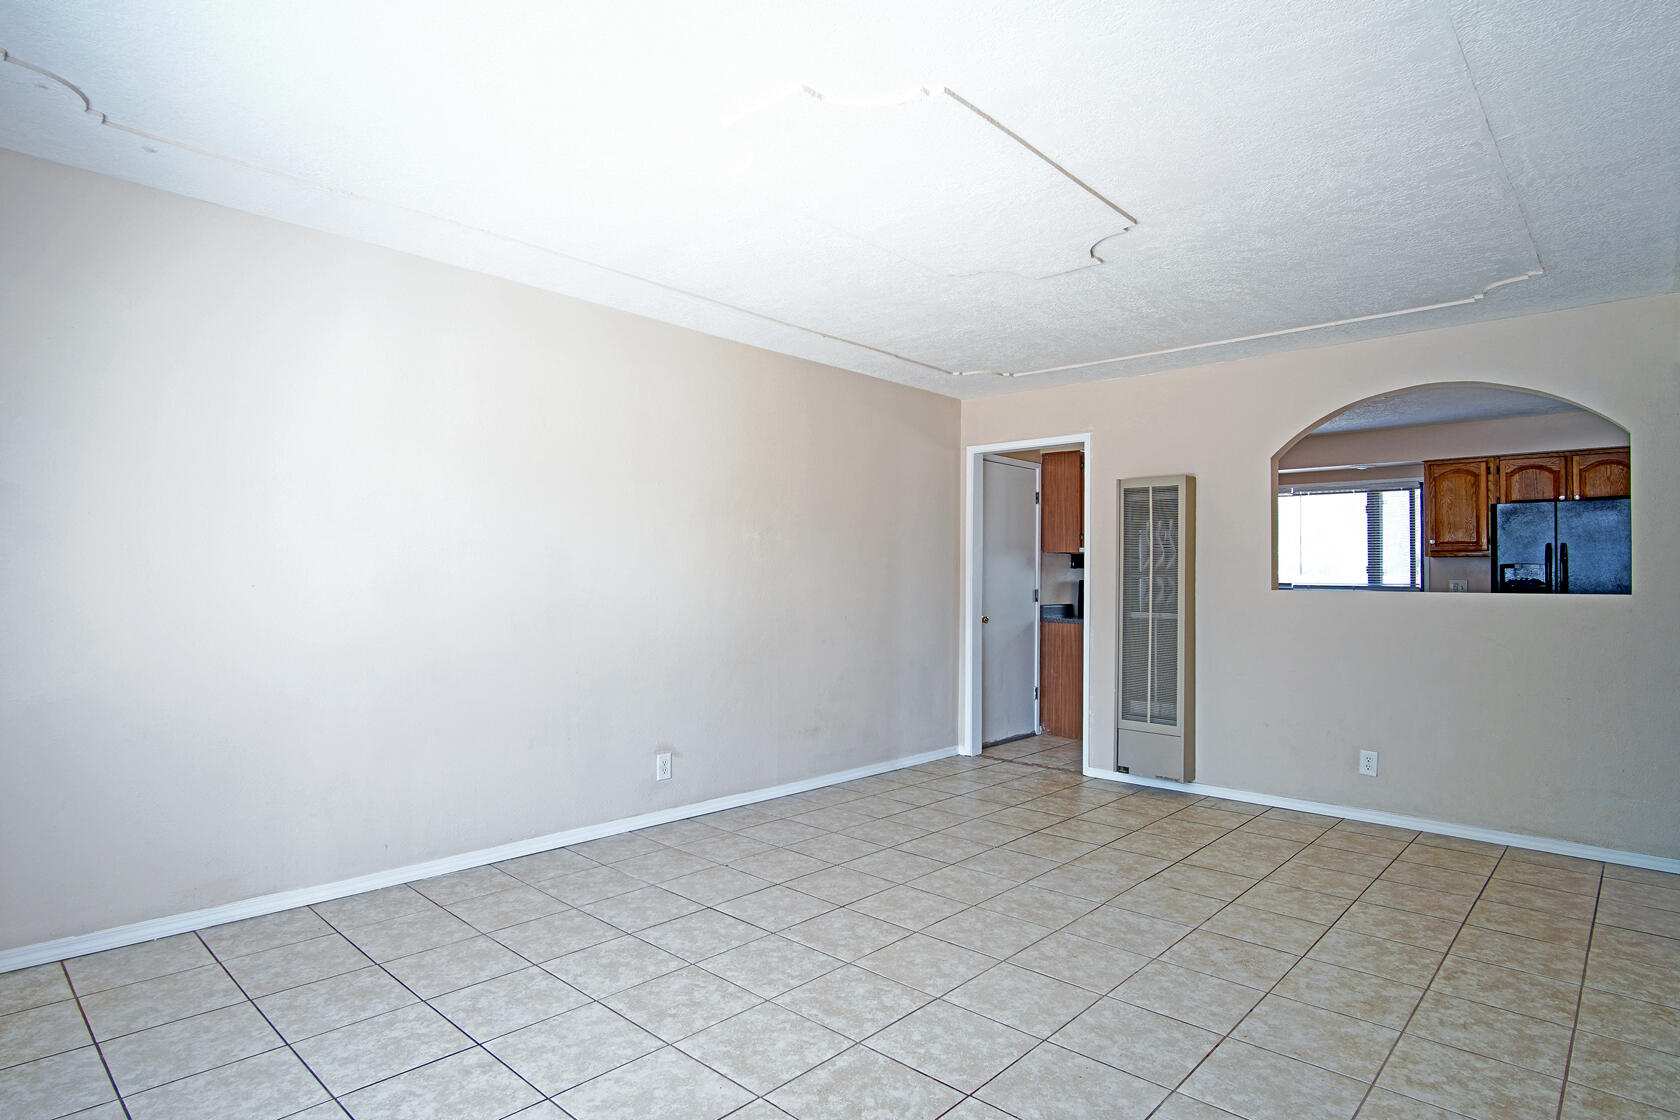 This home is conveniently located in the North East Heights. It is perfect for the first time homeowner. Enough room to grow as family, or the investor looking for a great investment.  If you commute the freeway is near by. Shopping centers are close by, as well great restaurants. The house has been freshly painted, as well as new blinds. All the appliances stay with the home.